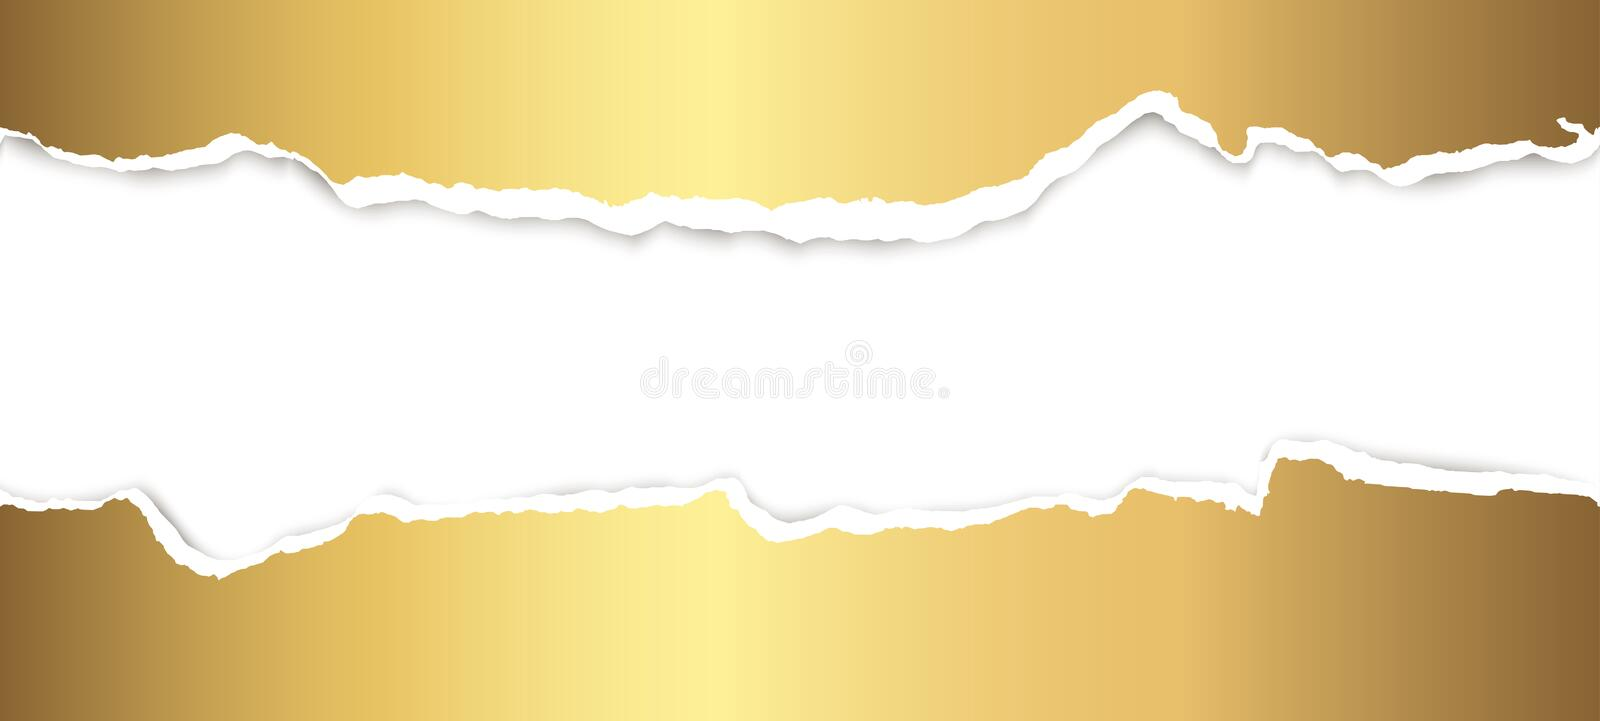 Ripped open paper. Upper and lower part of ripped open paper colored gold royalty free illustration